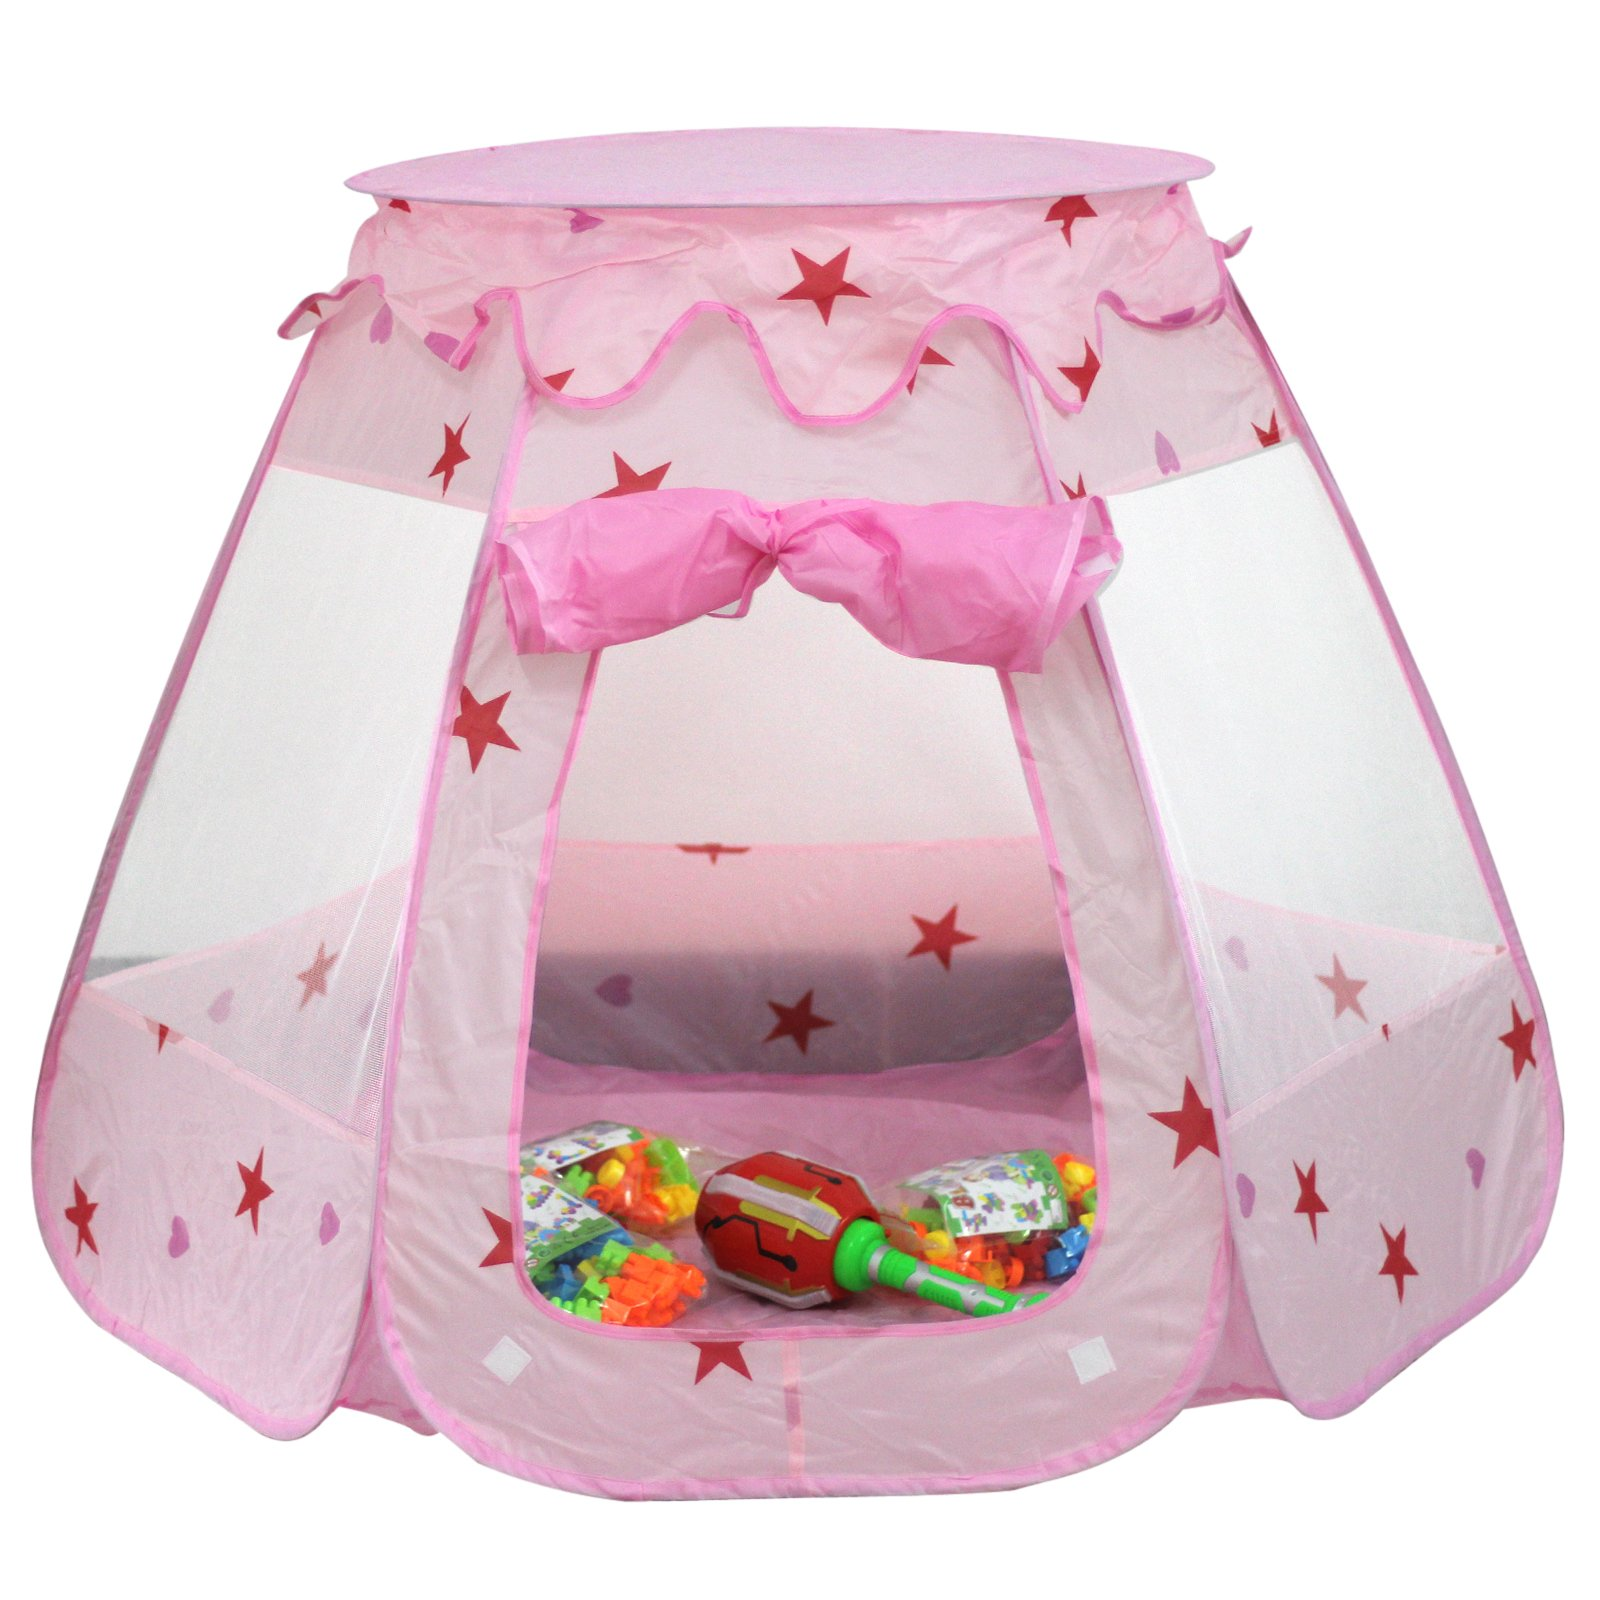 LiNKFOR Kids Play Tent, Indoor Outdoor Children Toys Playhouse for Boys Girls Play Pit Balls Pool Suitable for 1-6 Years Old Children Kids